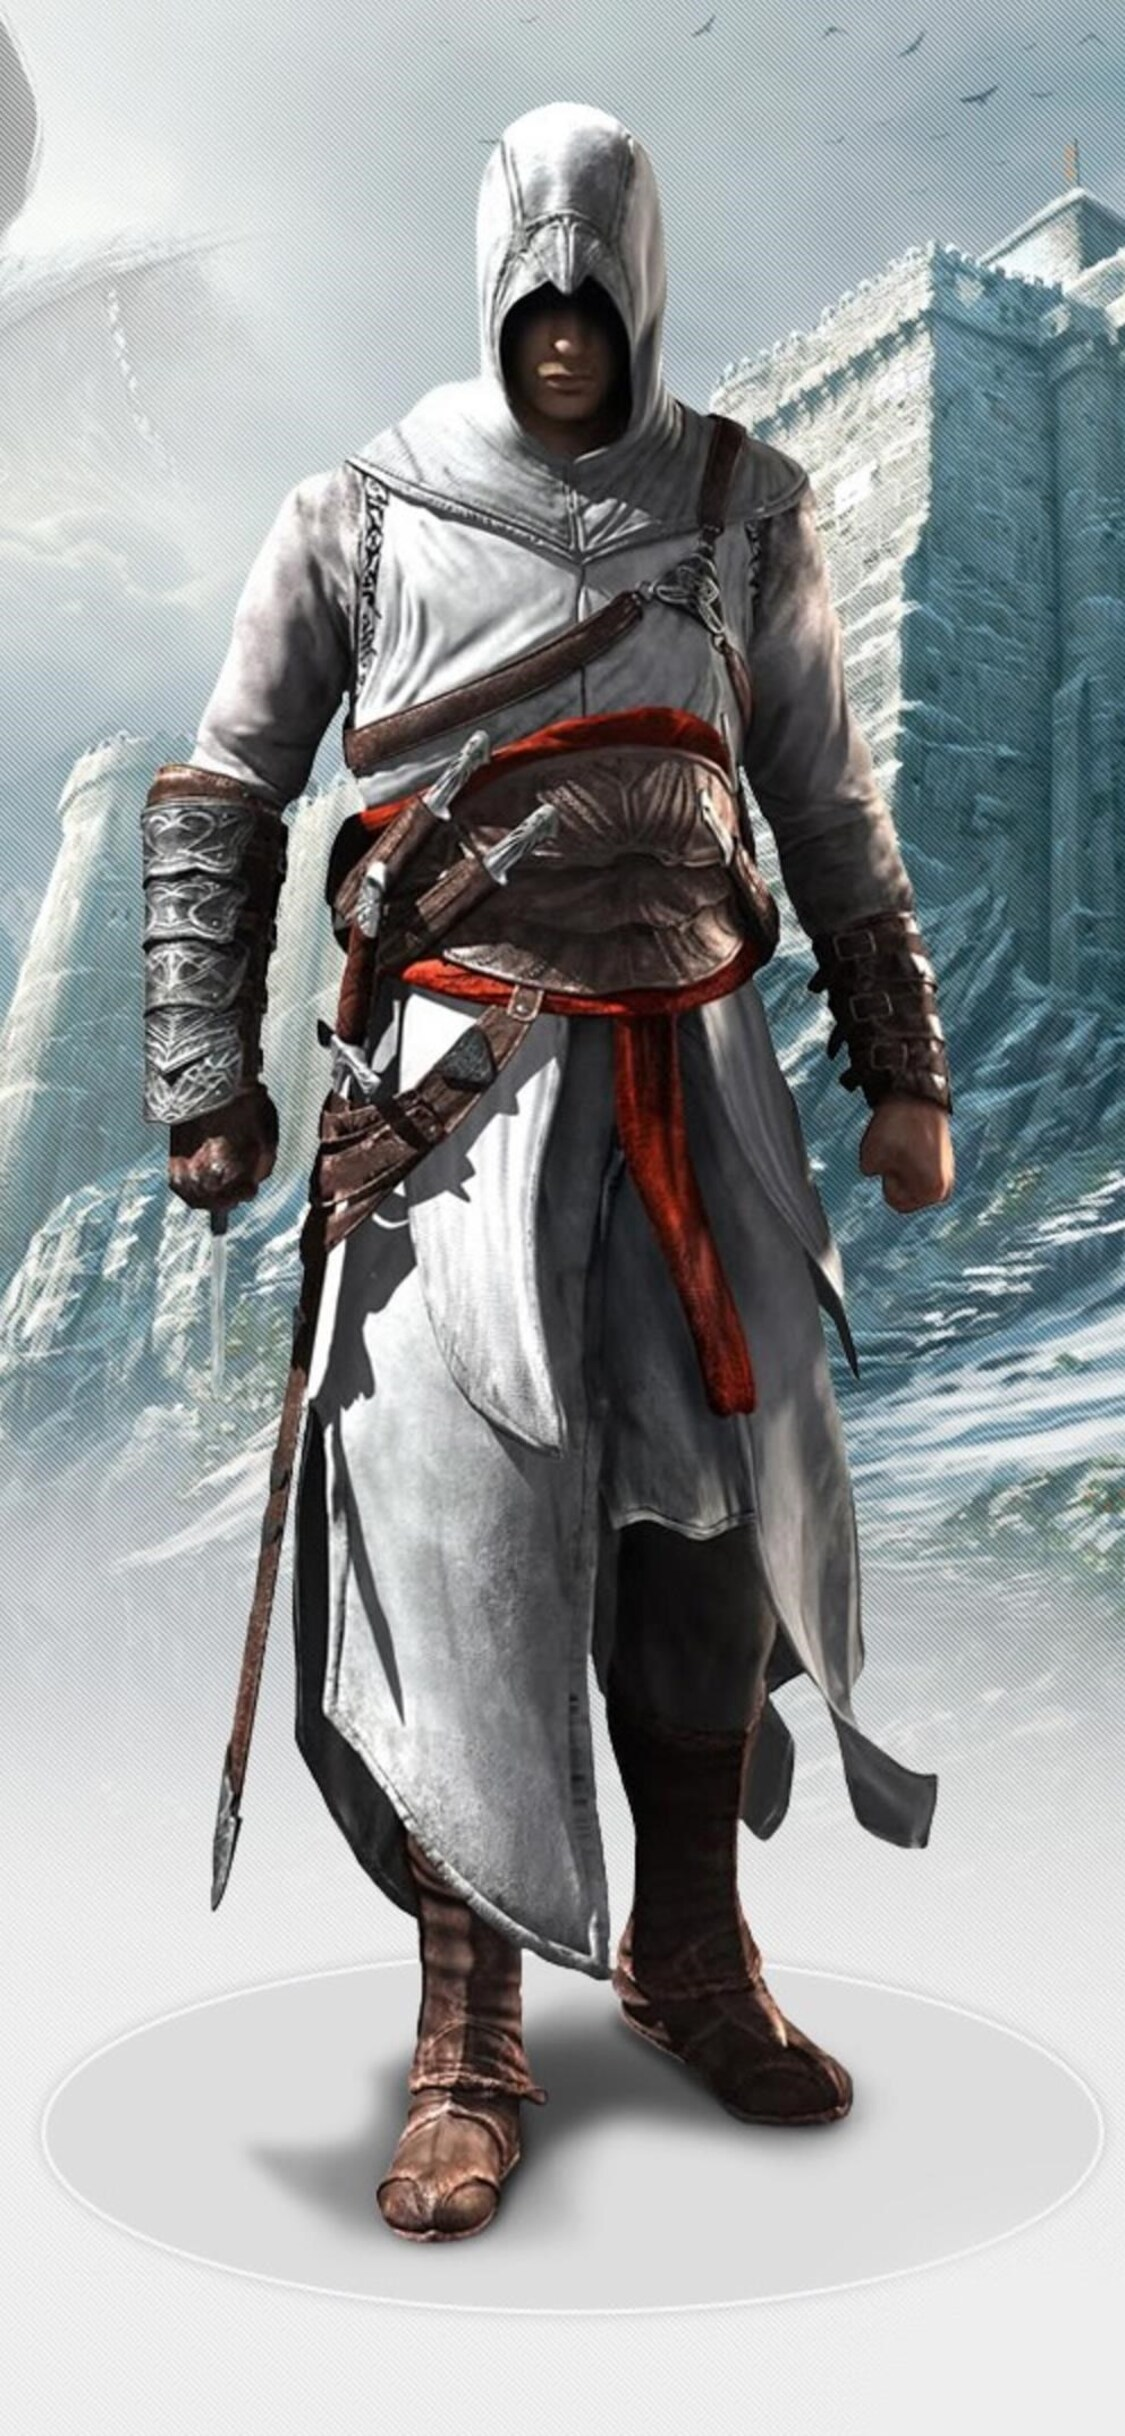 1125x2436 Altair In Assassins Creed 2 Iphone Xsiphone 10